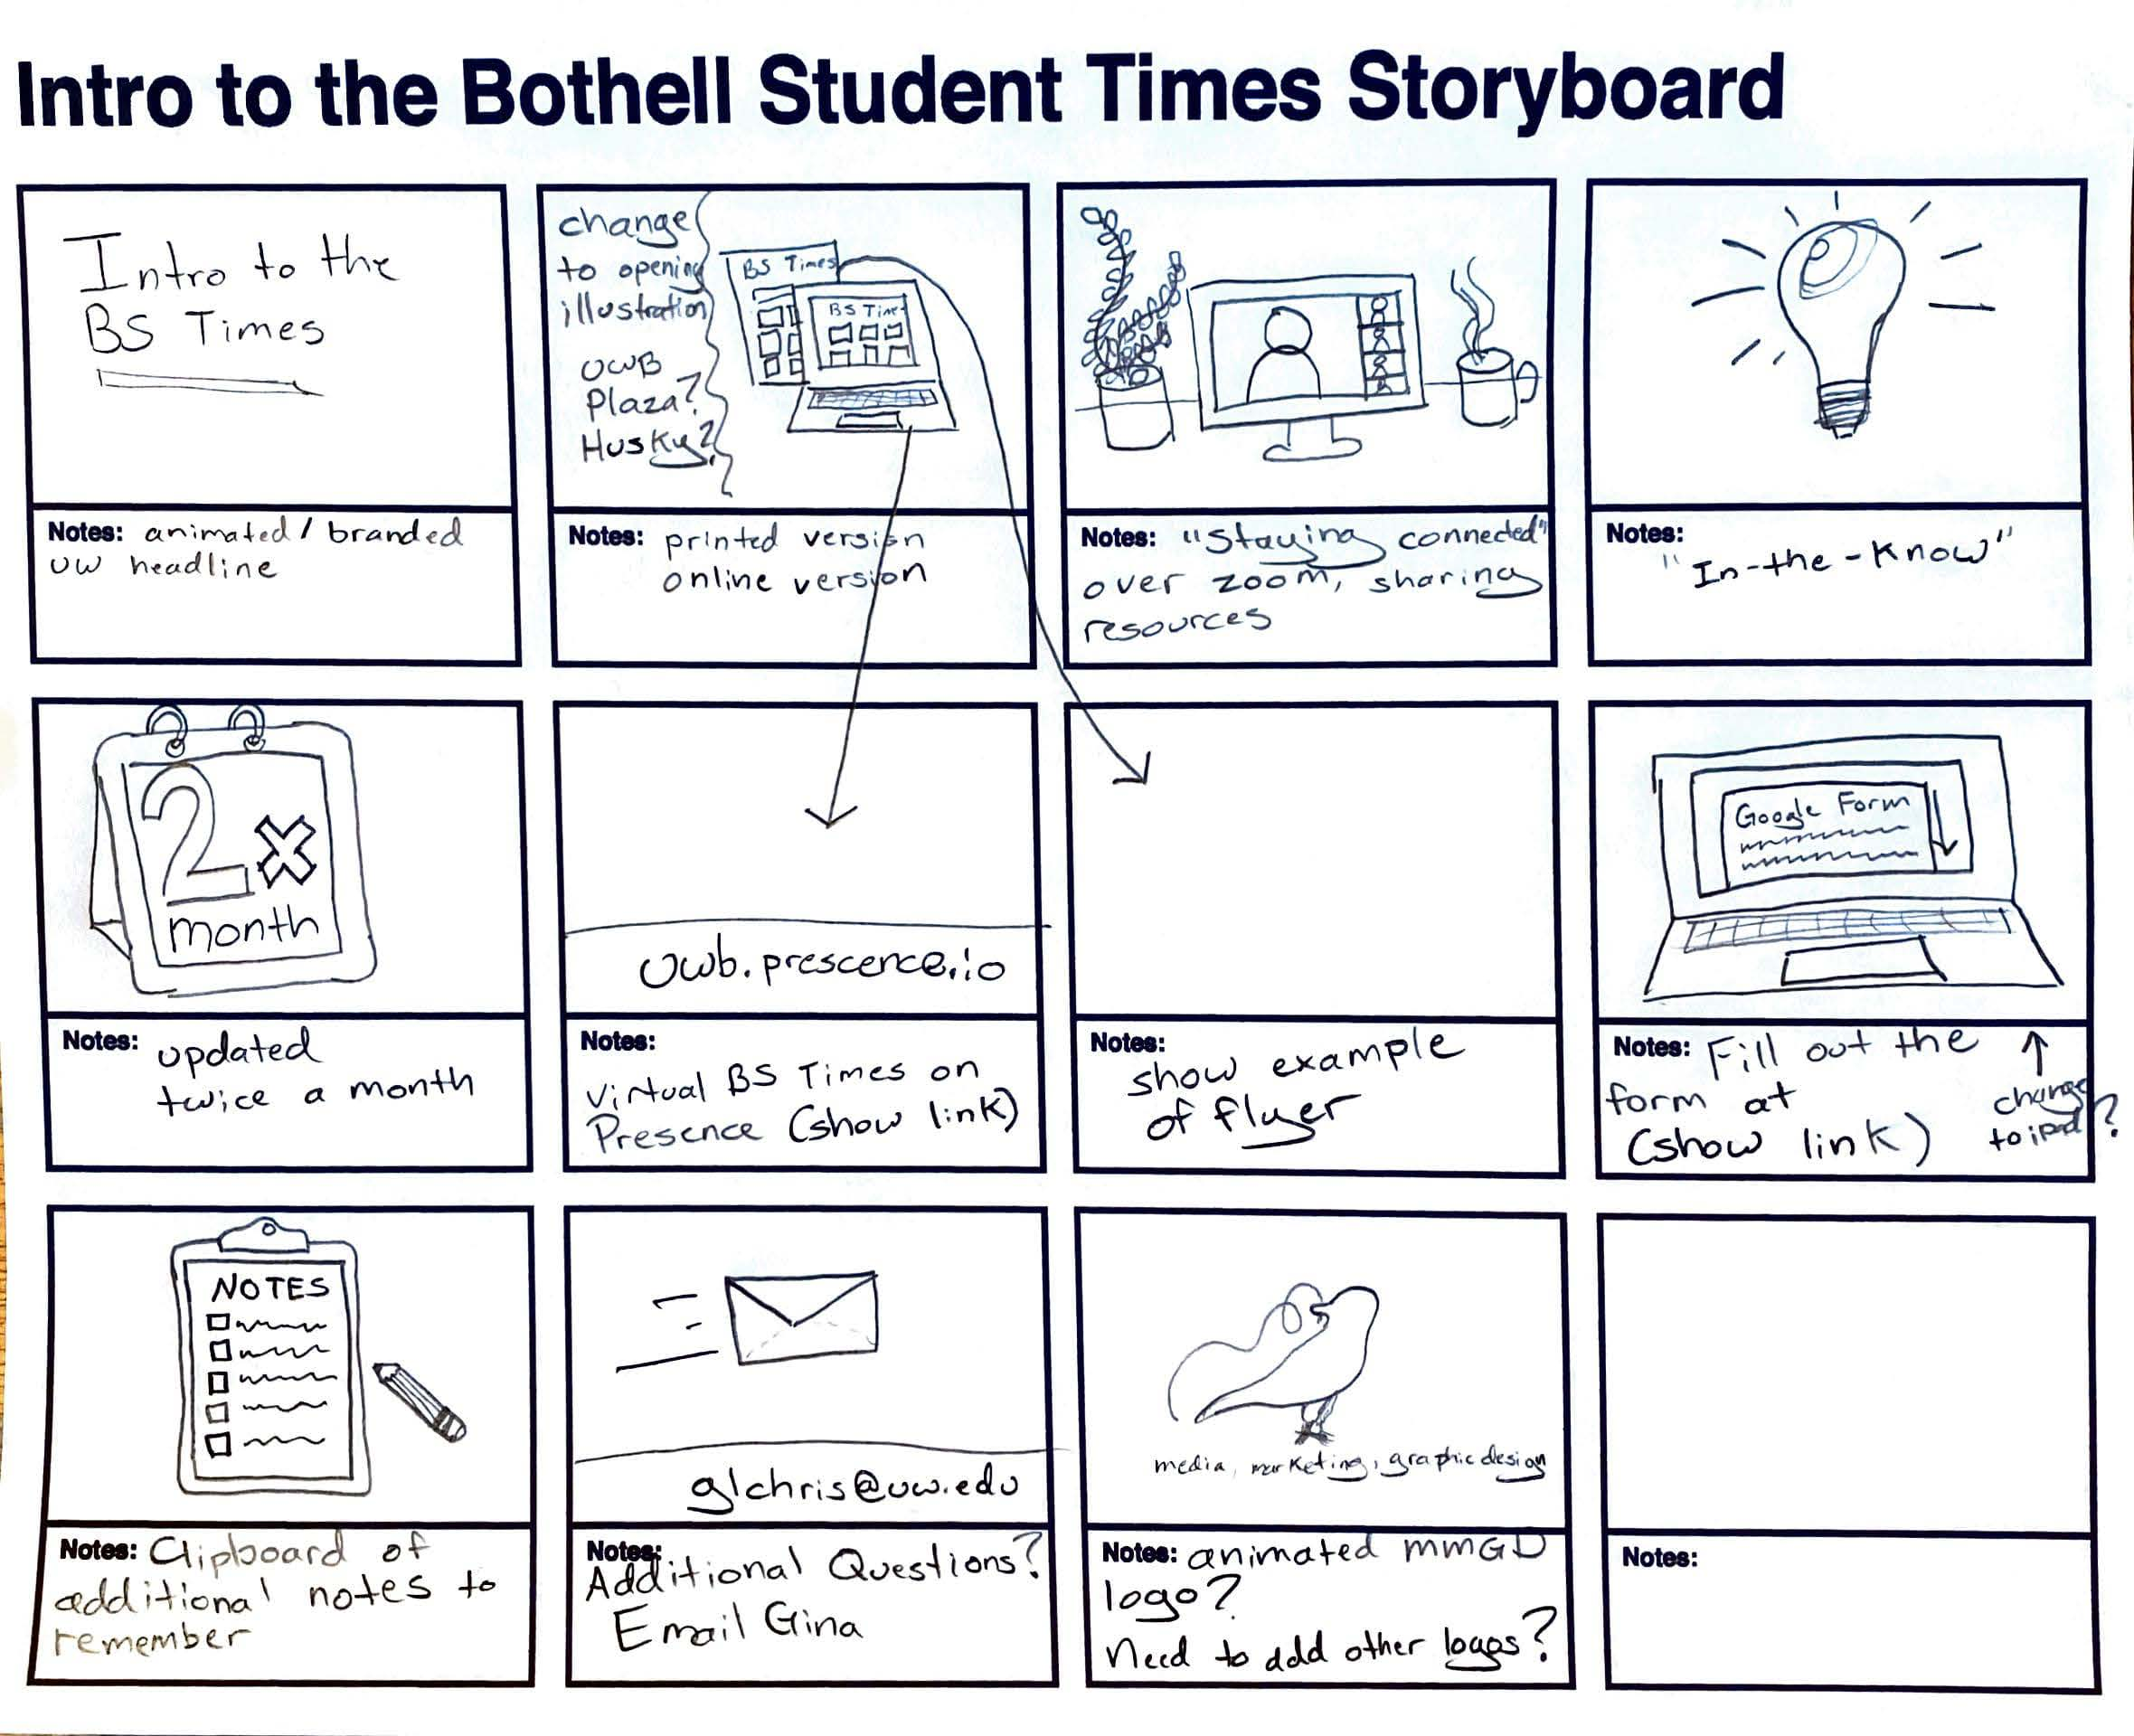 Intro-to-the-bs-times-storyboard